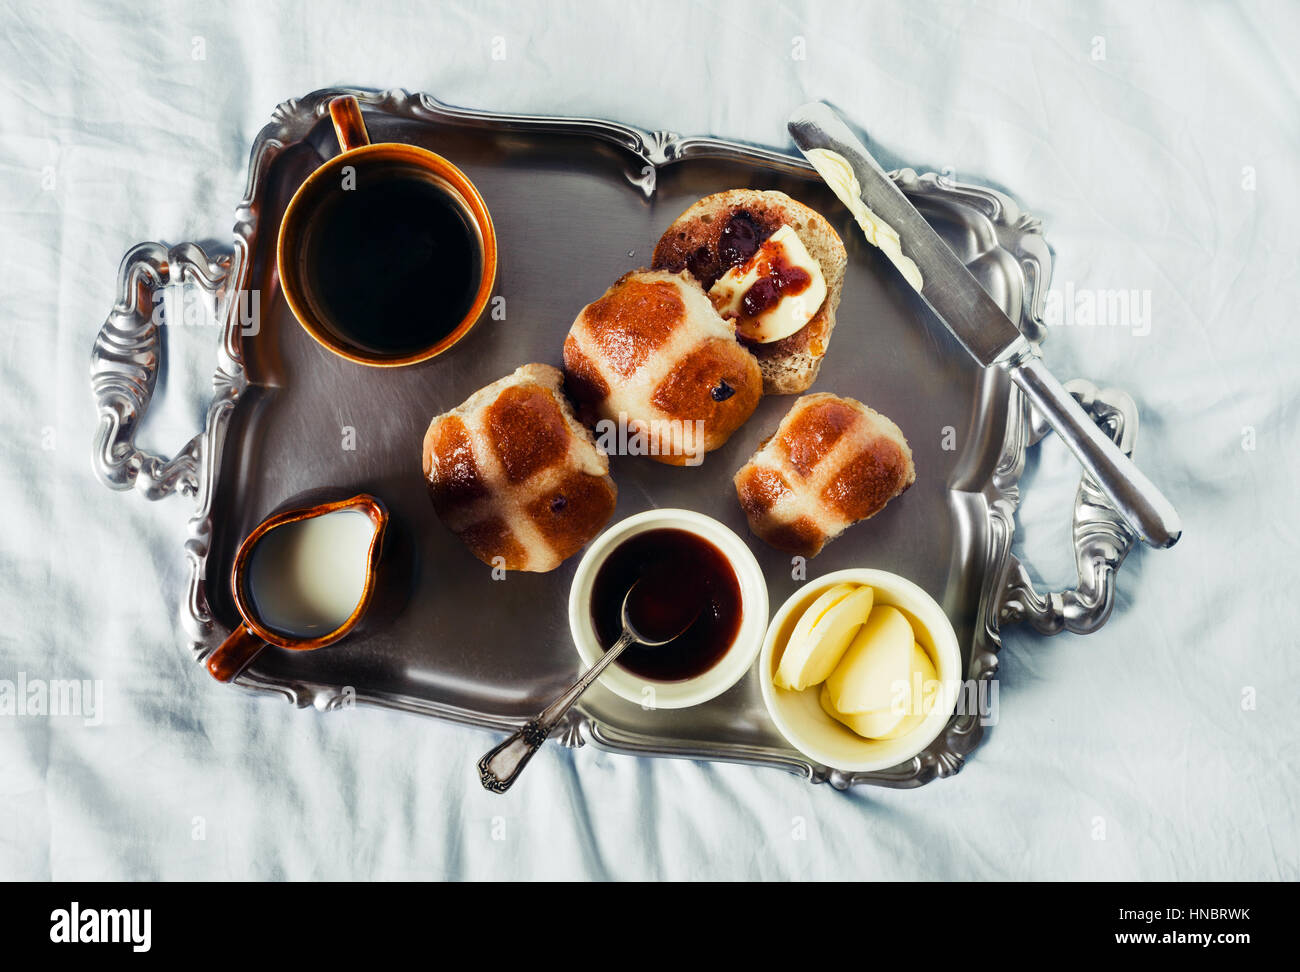 Breakfast on a silver tray on blue sheets on the bed. Scones with Jam and butter, and hot strong Coffee with milk. - Stock Image